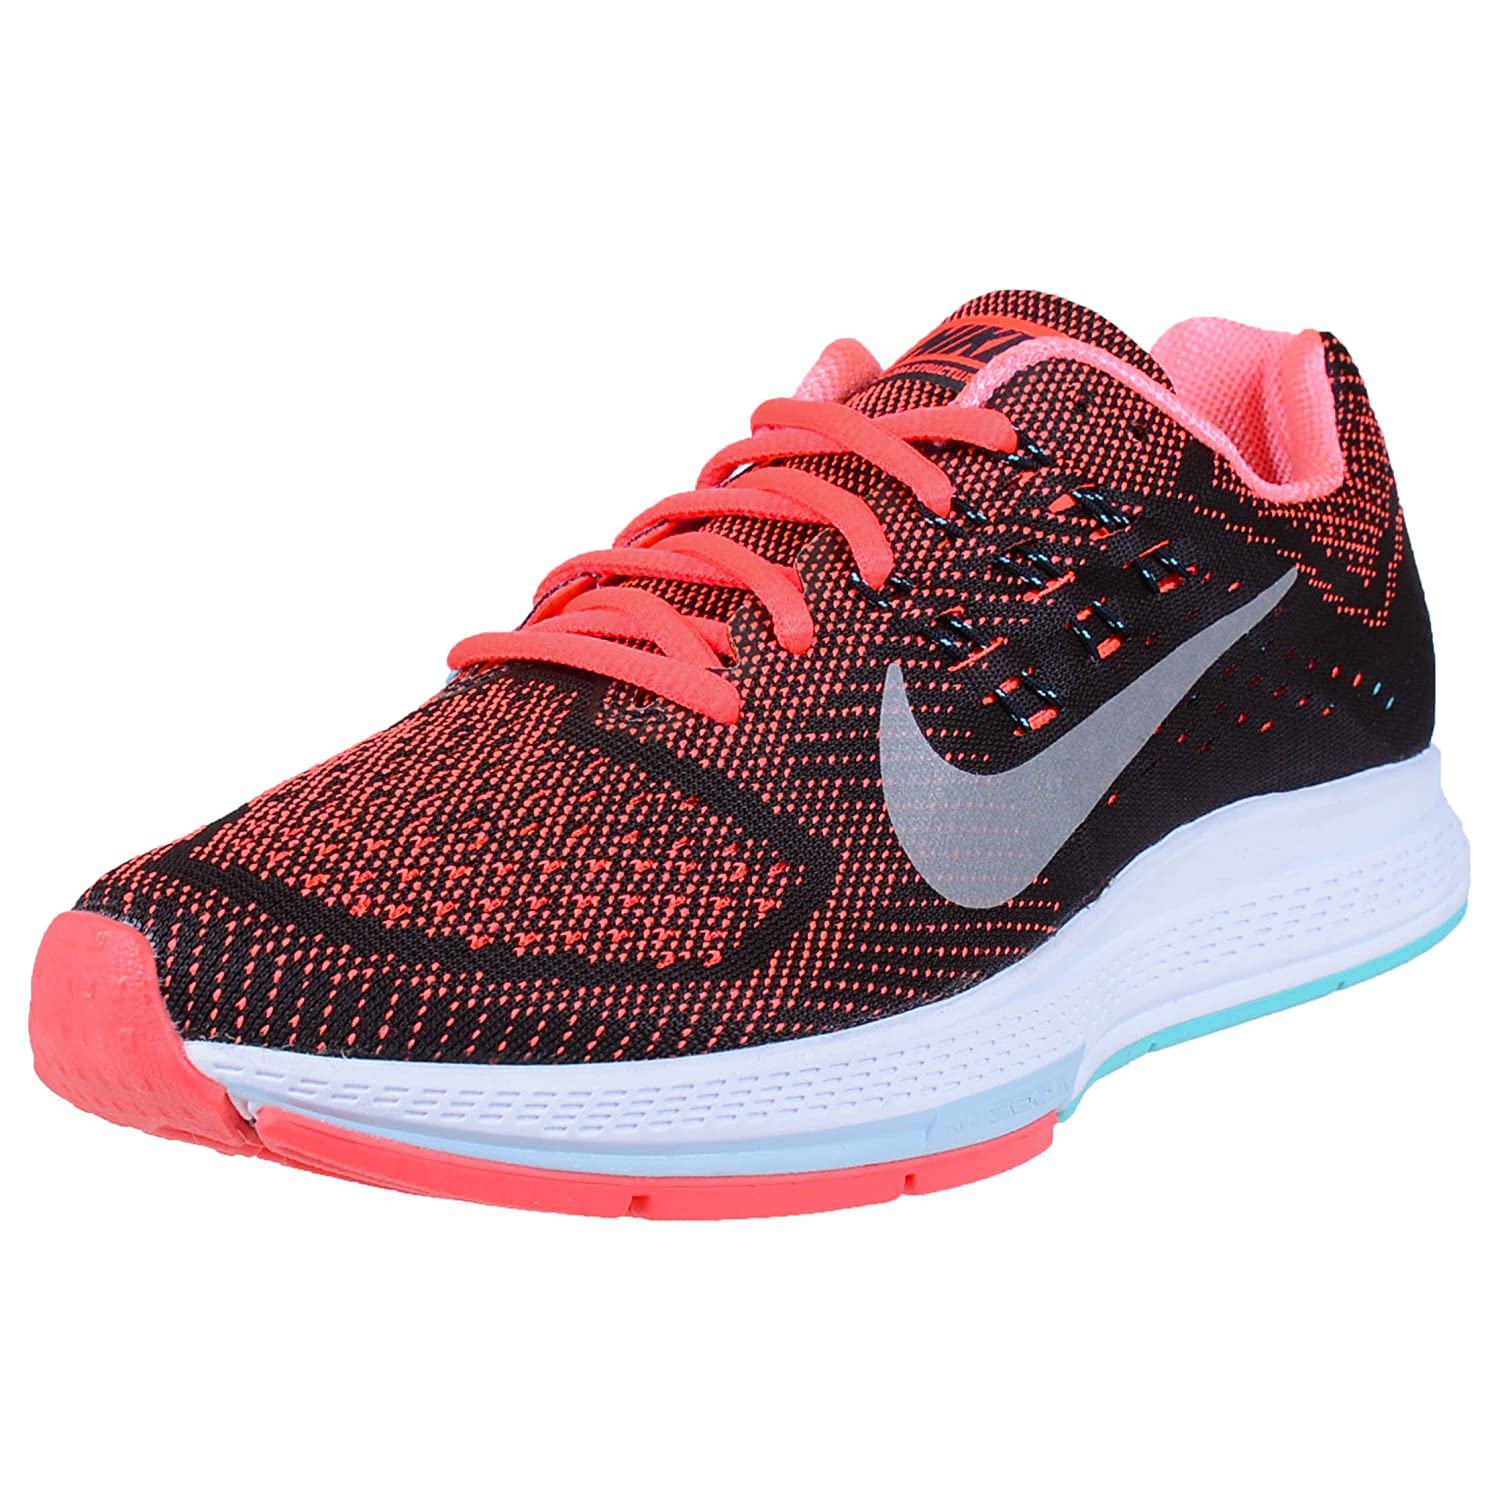 reputable site 0fc67 2eeb5 Nike Air Zoom Structure 18 W Women Black Size: 3.5: Amazon ...